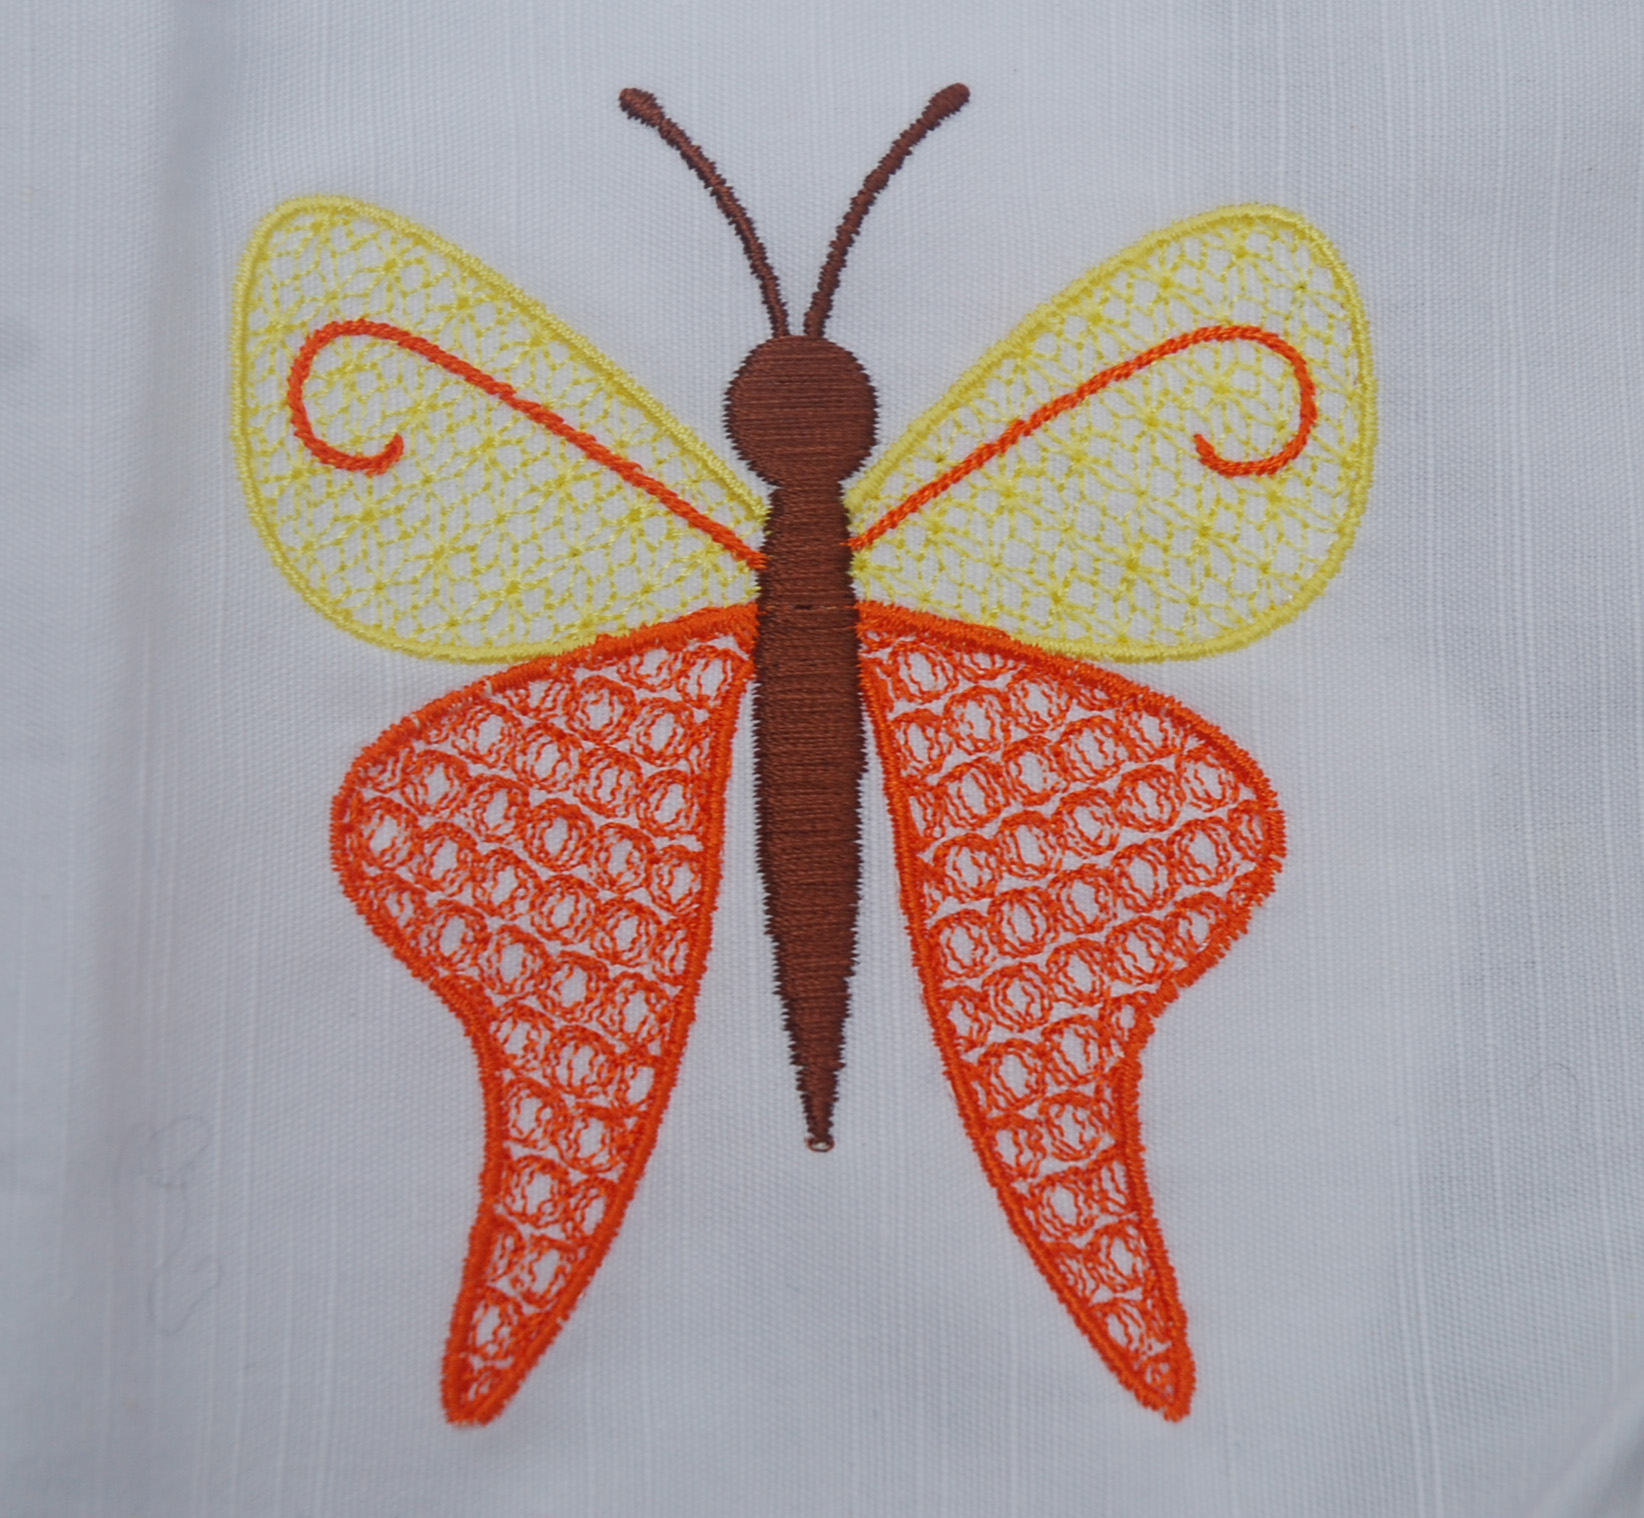 Free Embroidery Designs Cute Lidia Butterfly The First Picture Is Of Lenamae Test Stitched For Me In Pes